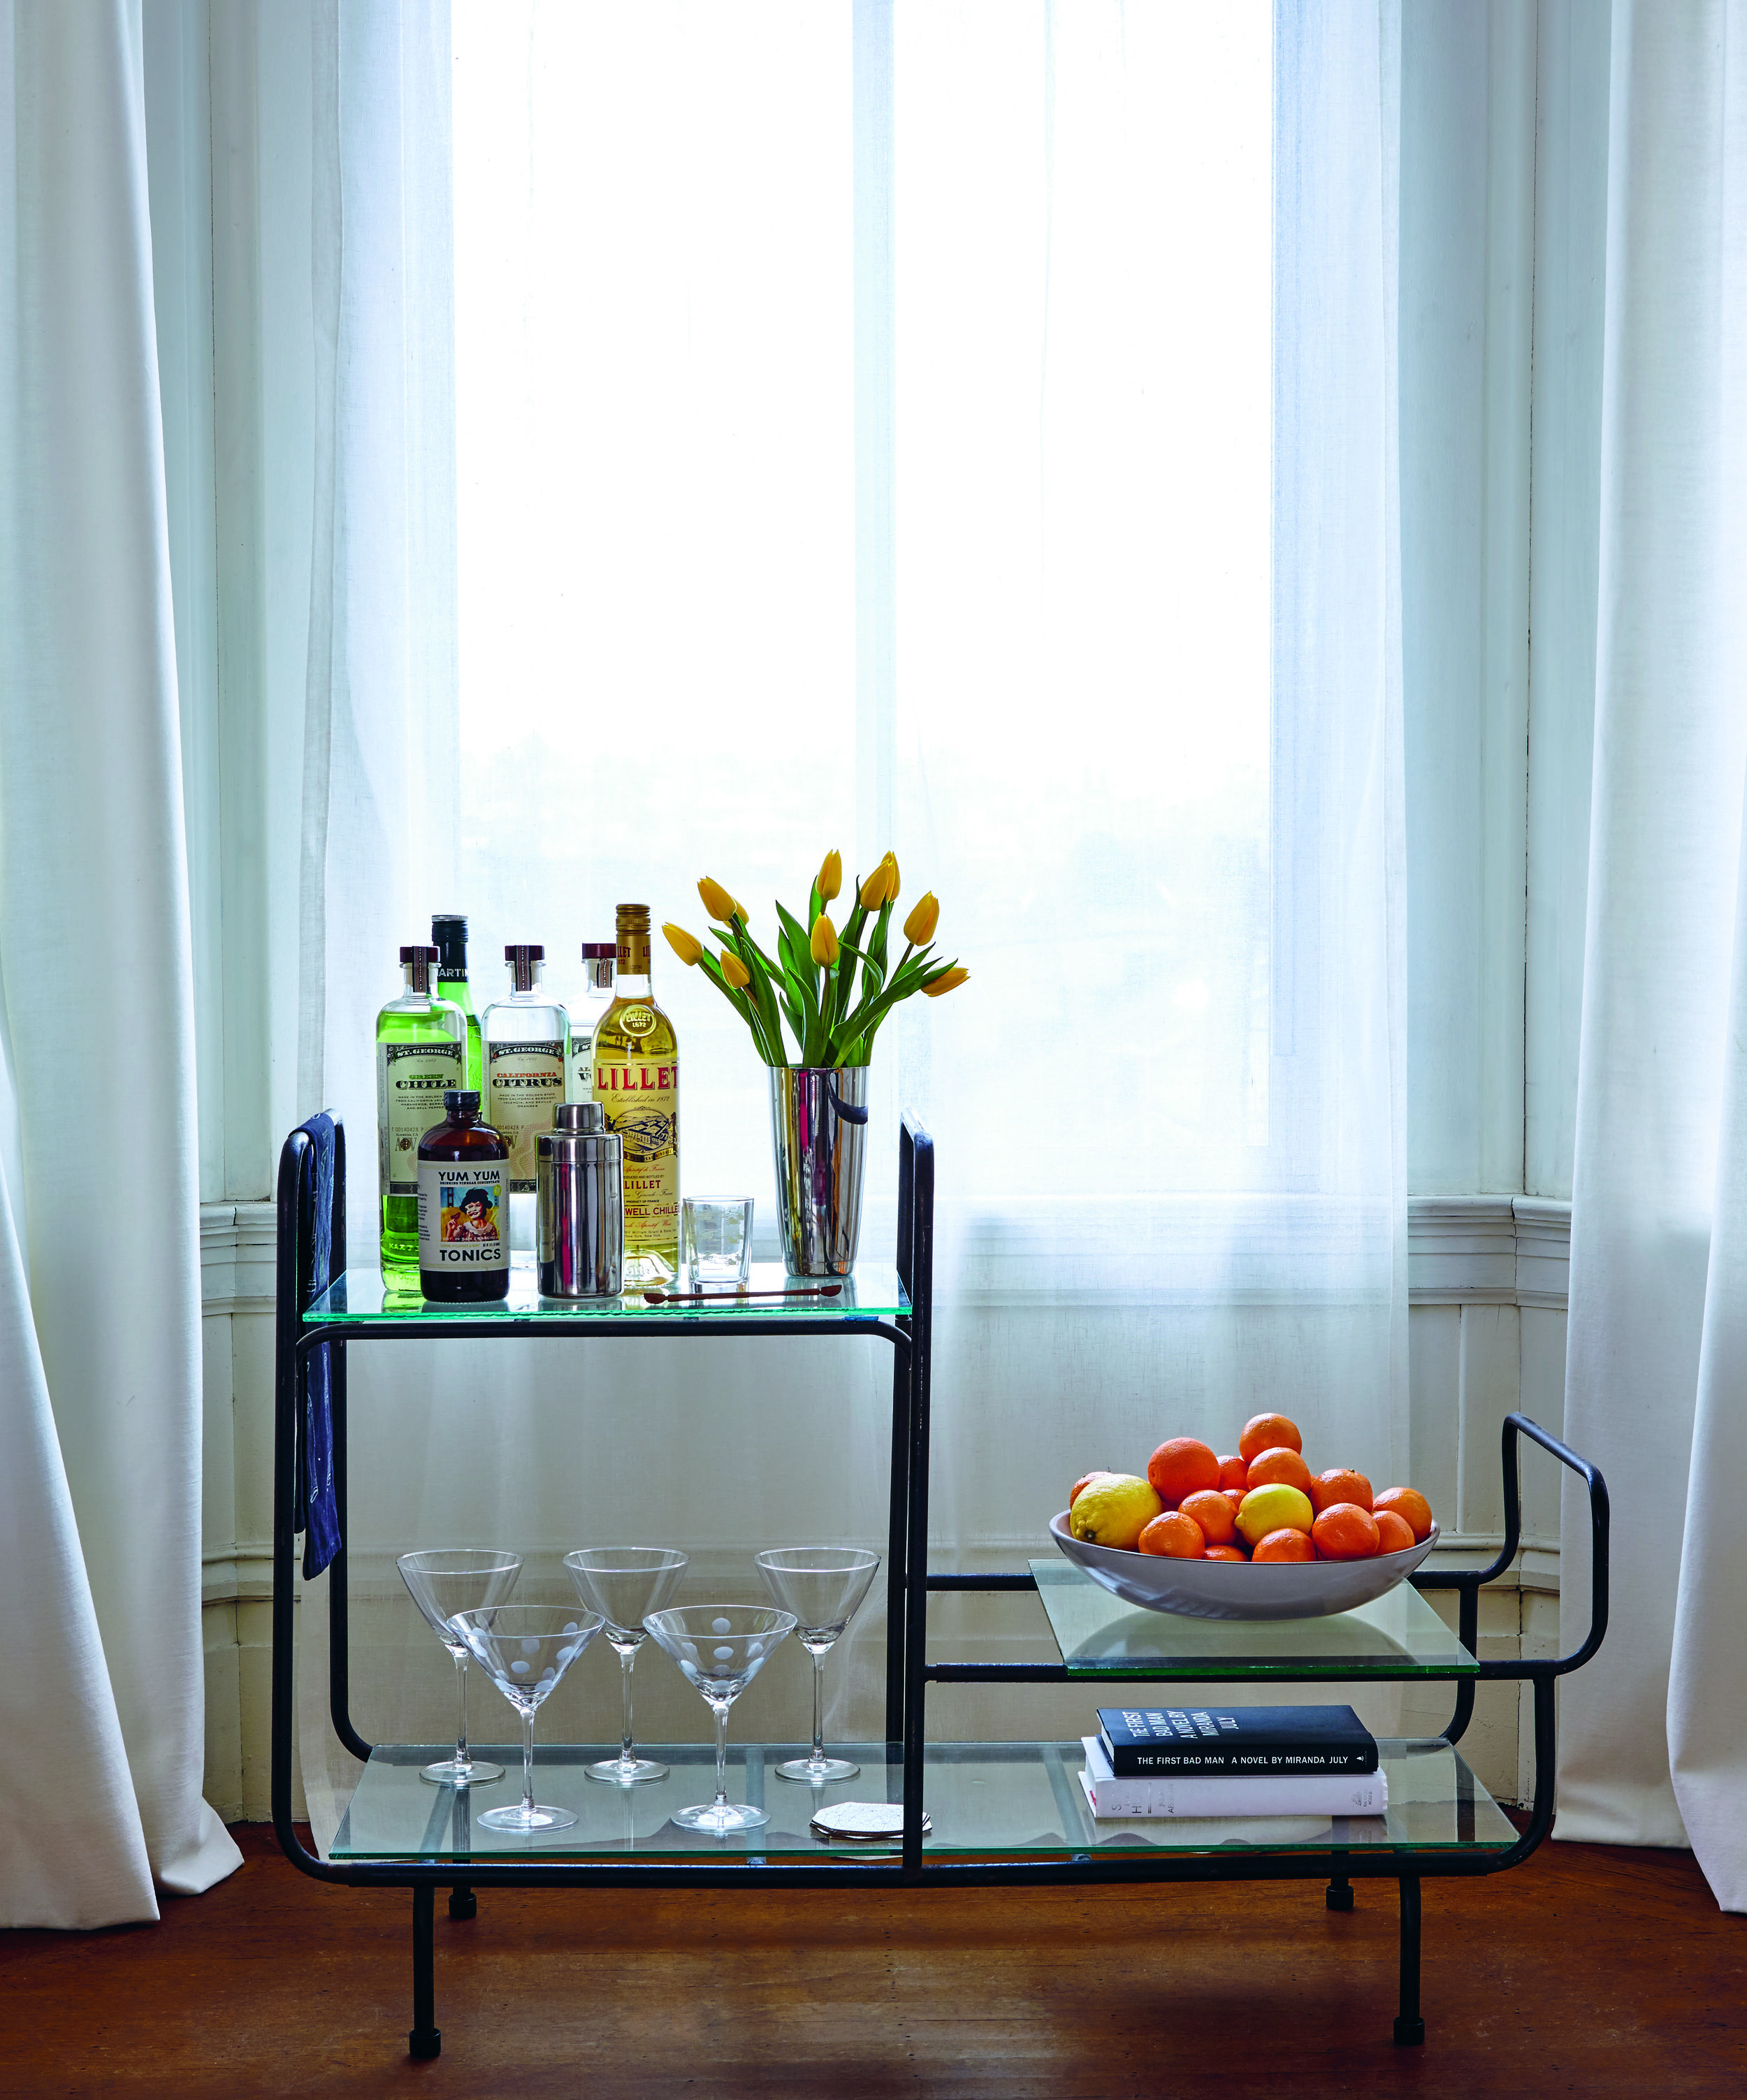 Bar_cart_ vodka _125.jpg